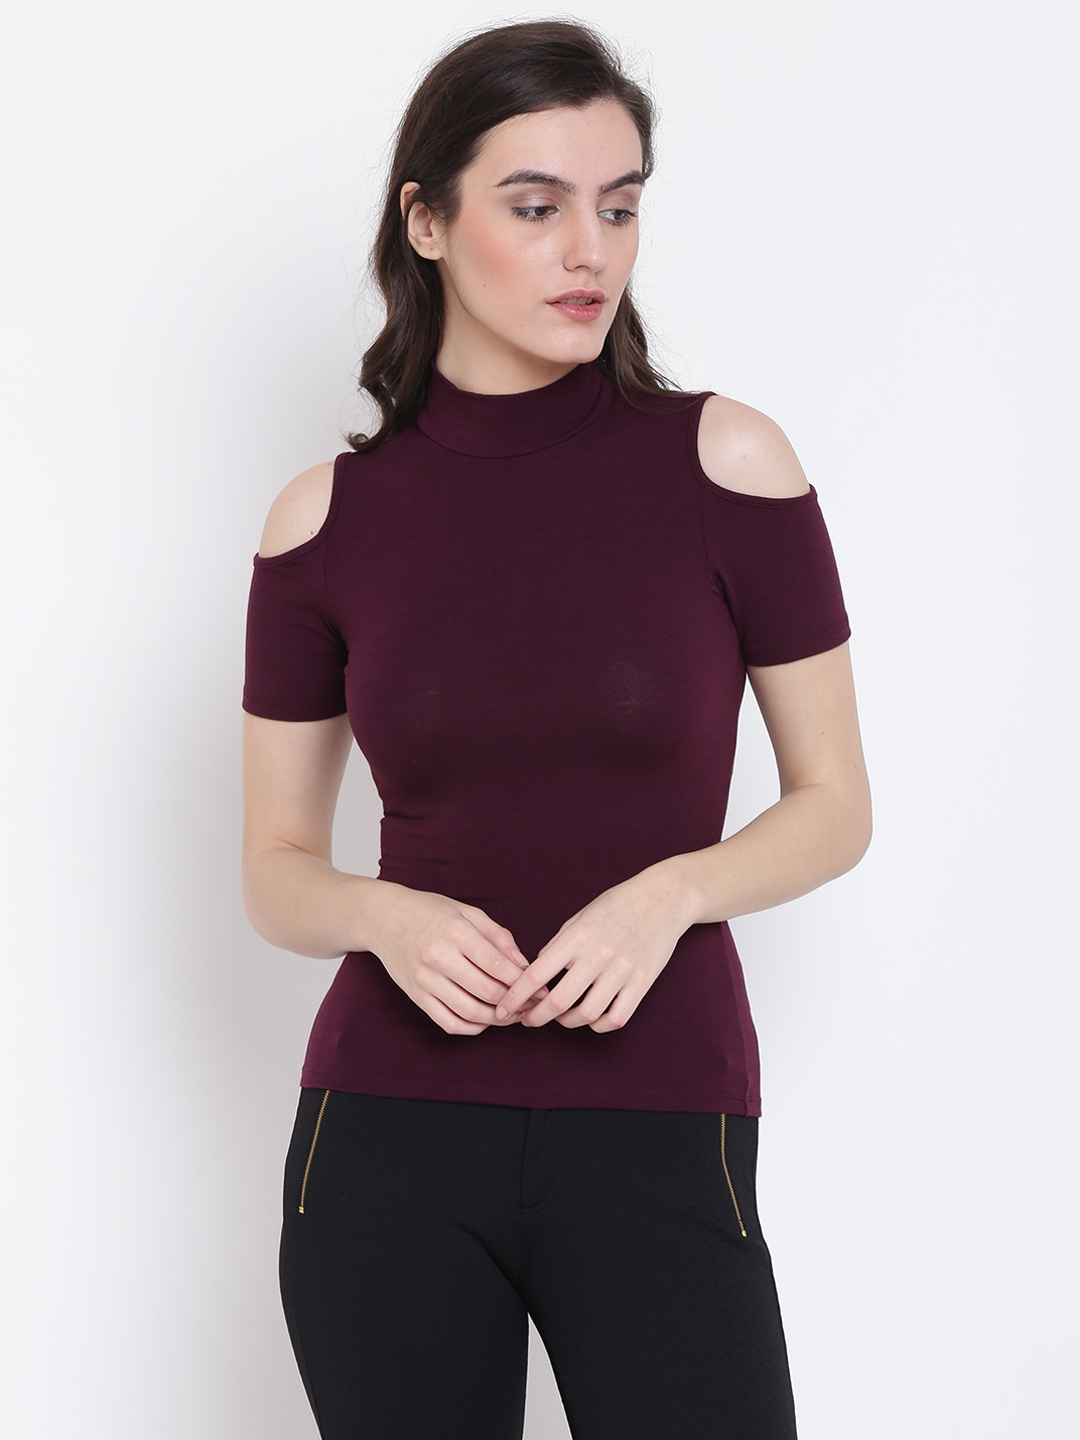 f22c9878b1f1d0 Buy FOREVER 21 Women Aubergine Solid Fitted Top - Tops for Women ...